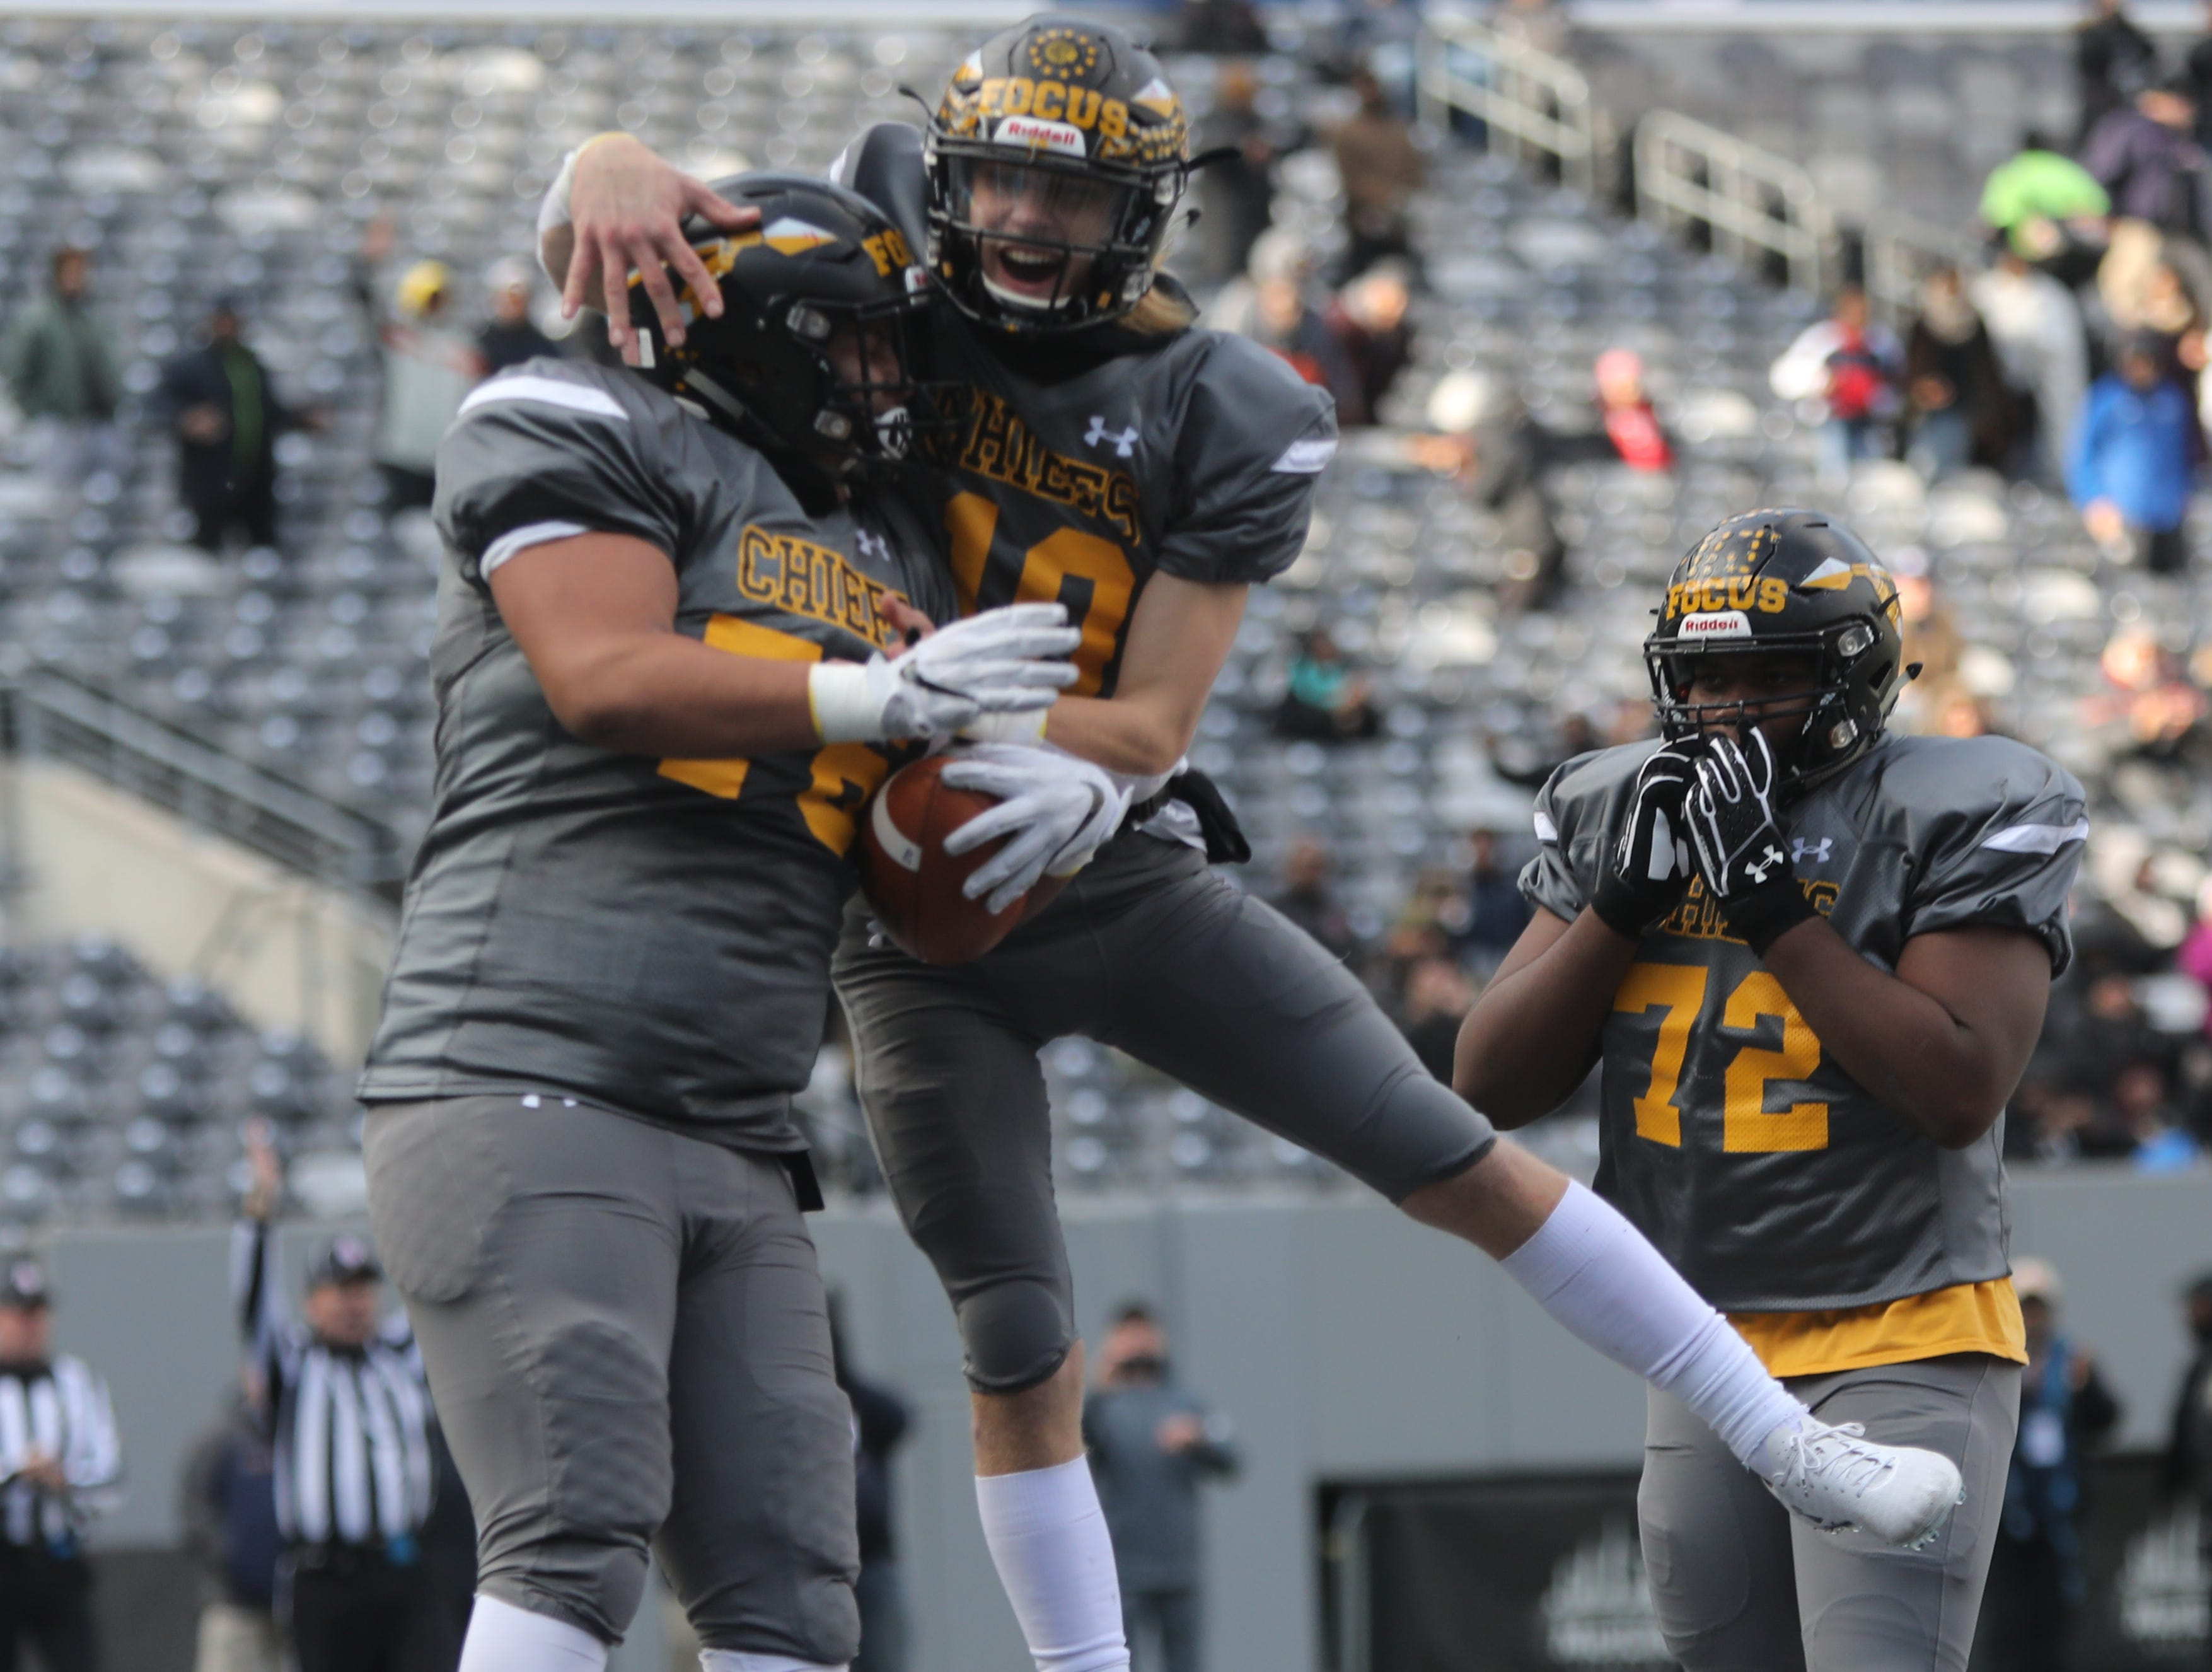 Offensive lineman Jordan Martell scores a second quarter TD on a recovery fumble and celebrates with team mate Joseph Hatcher.